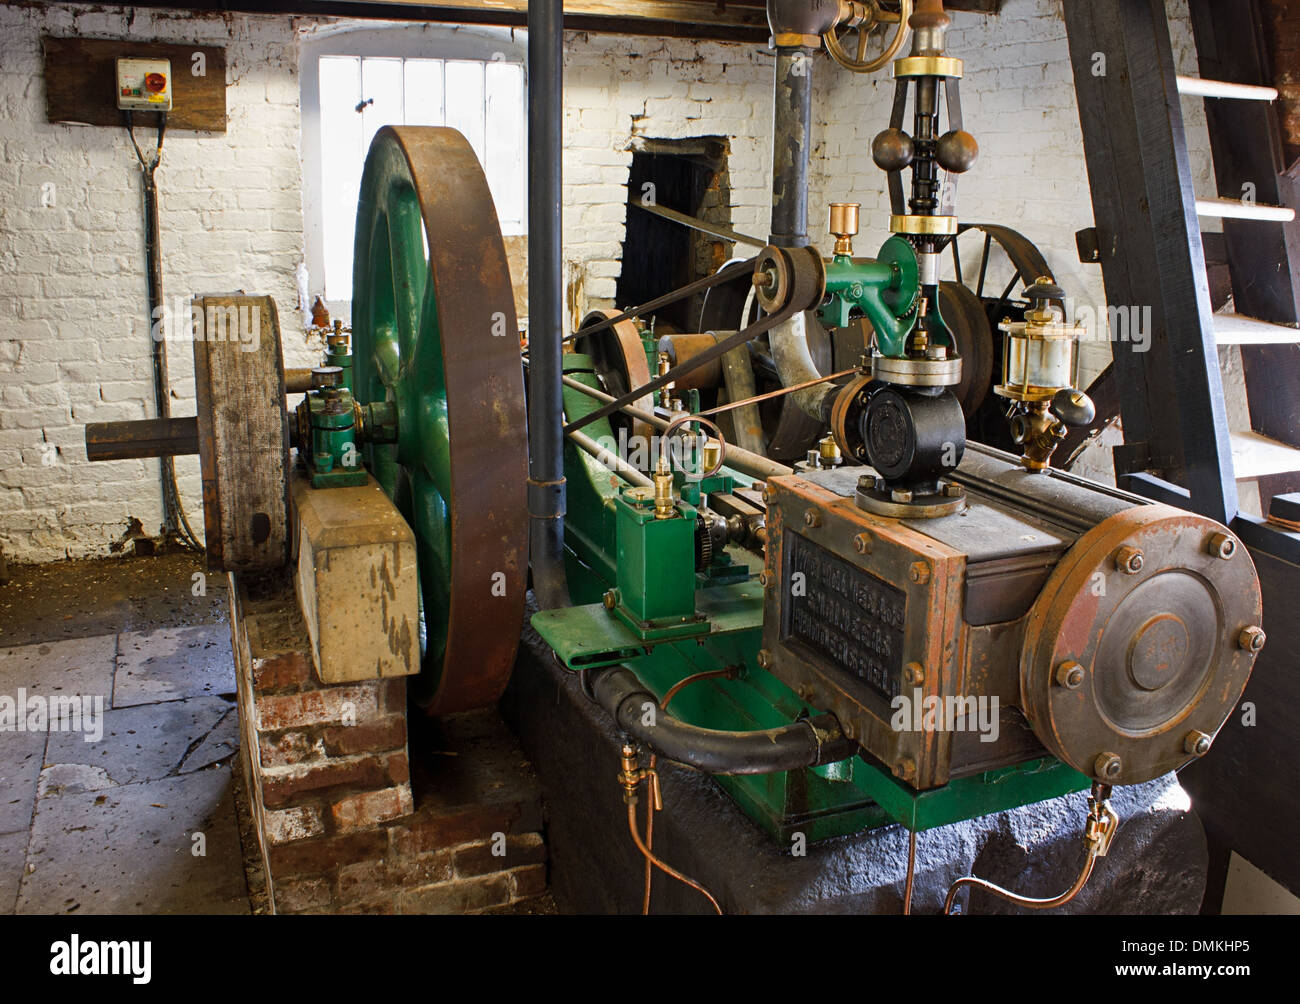 Josephine miniature steam Engine once restored by Fred Dibnah, located at Wetheriggs pottery, near Penrith, Cumbria - Stock Image